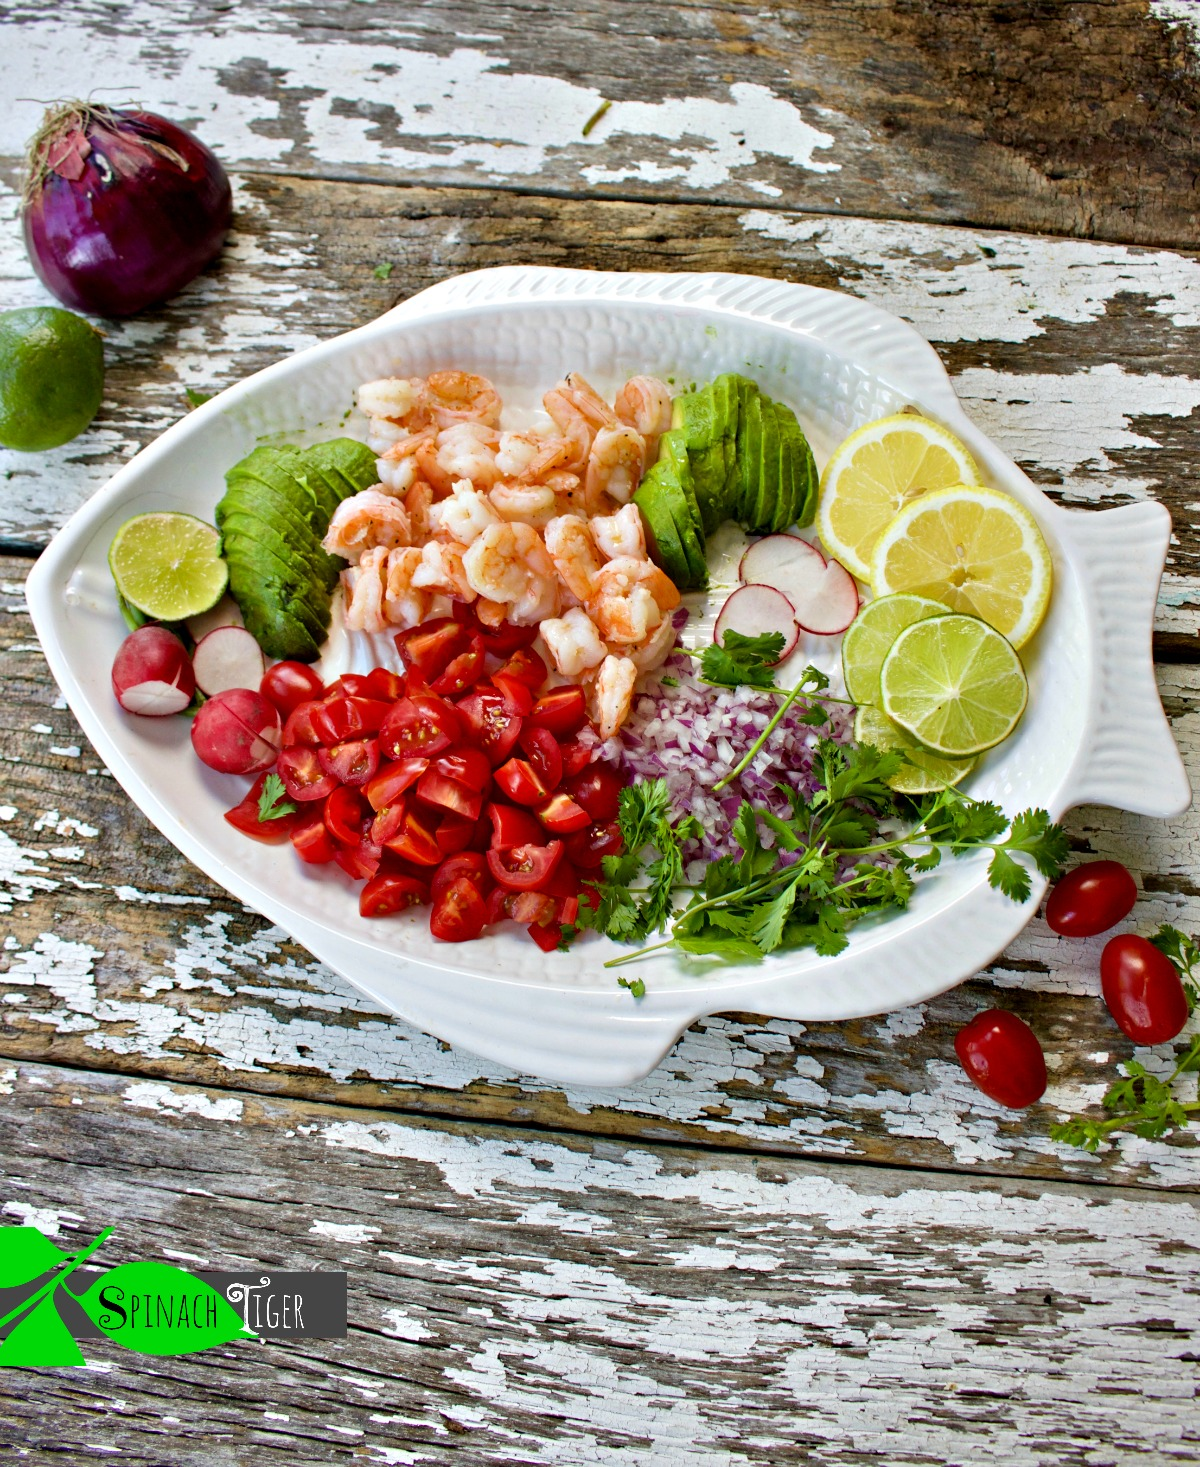 Delicious Shrimp Avocado Salad Recipe from Spinach Tiger